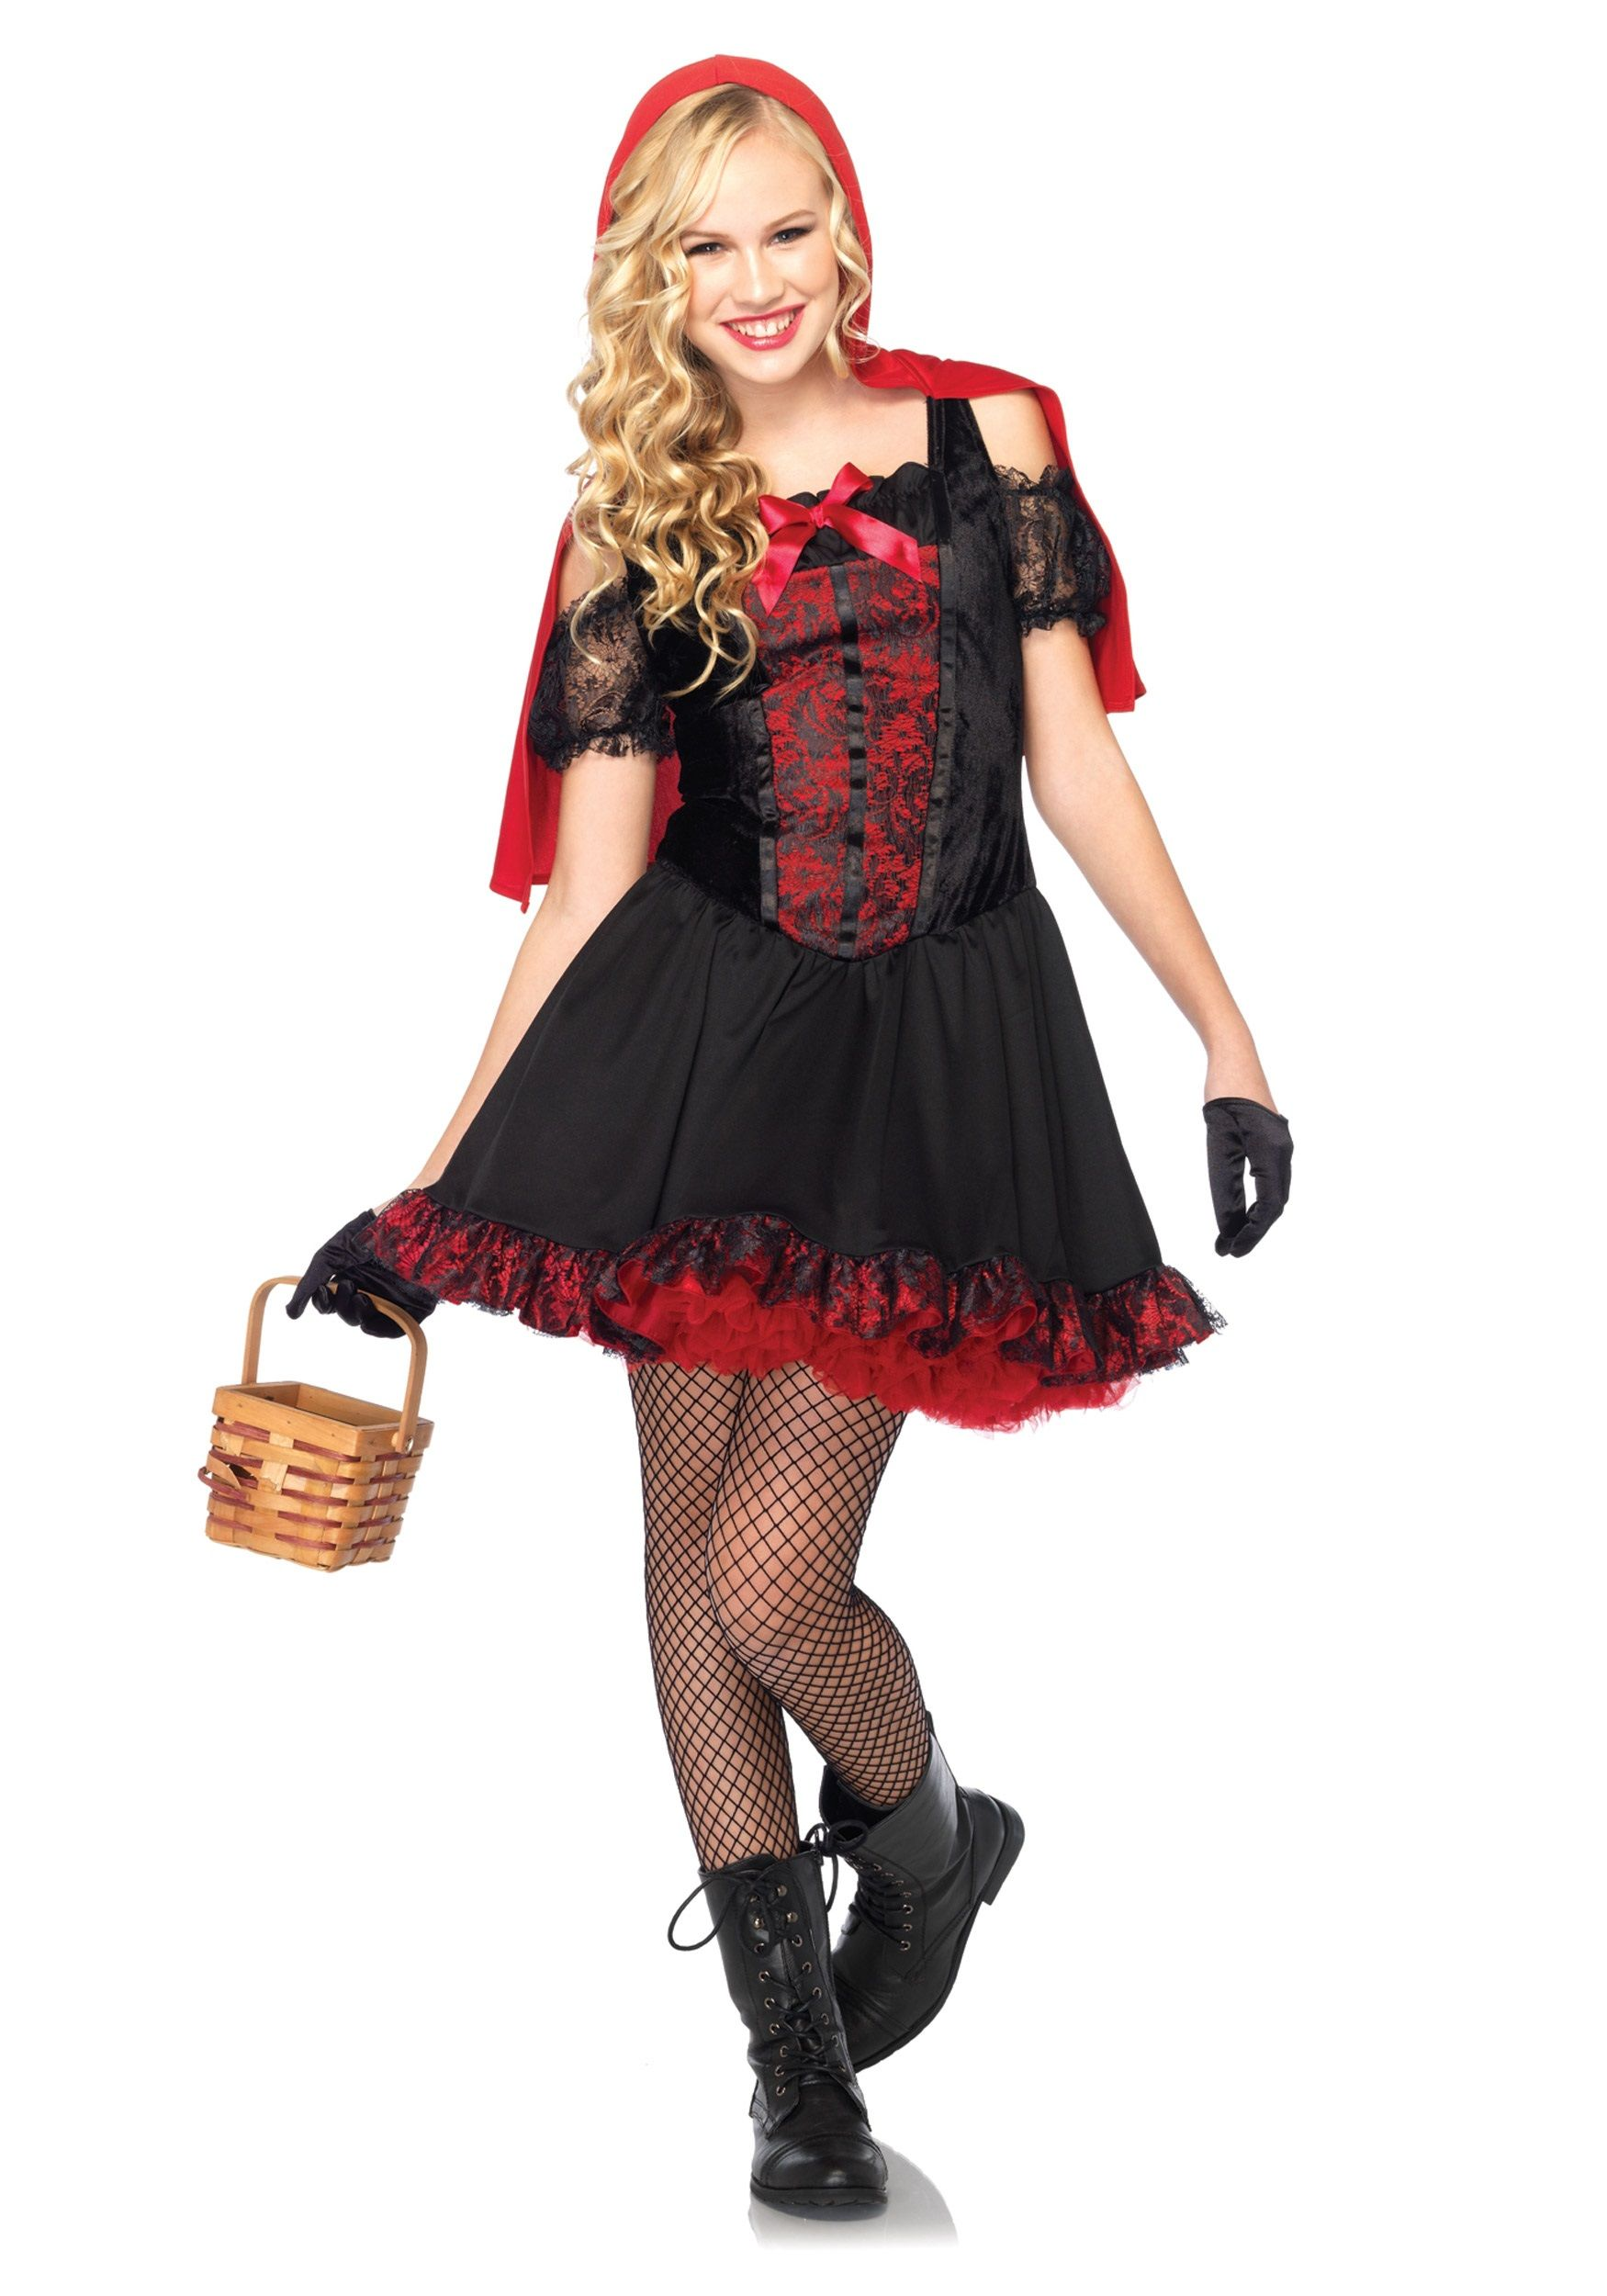 halloween ideas girls teen rebel miss red costume halloween costumes costumes and big - Girls Teen Halloween Costumes